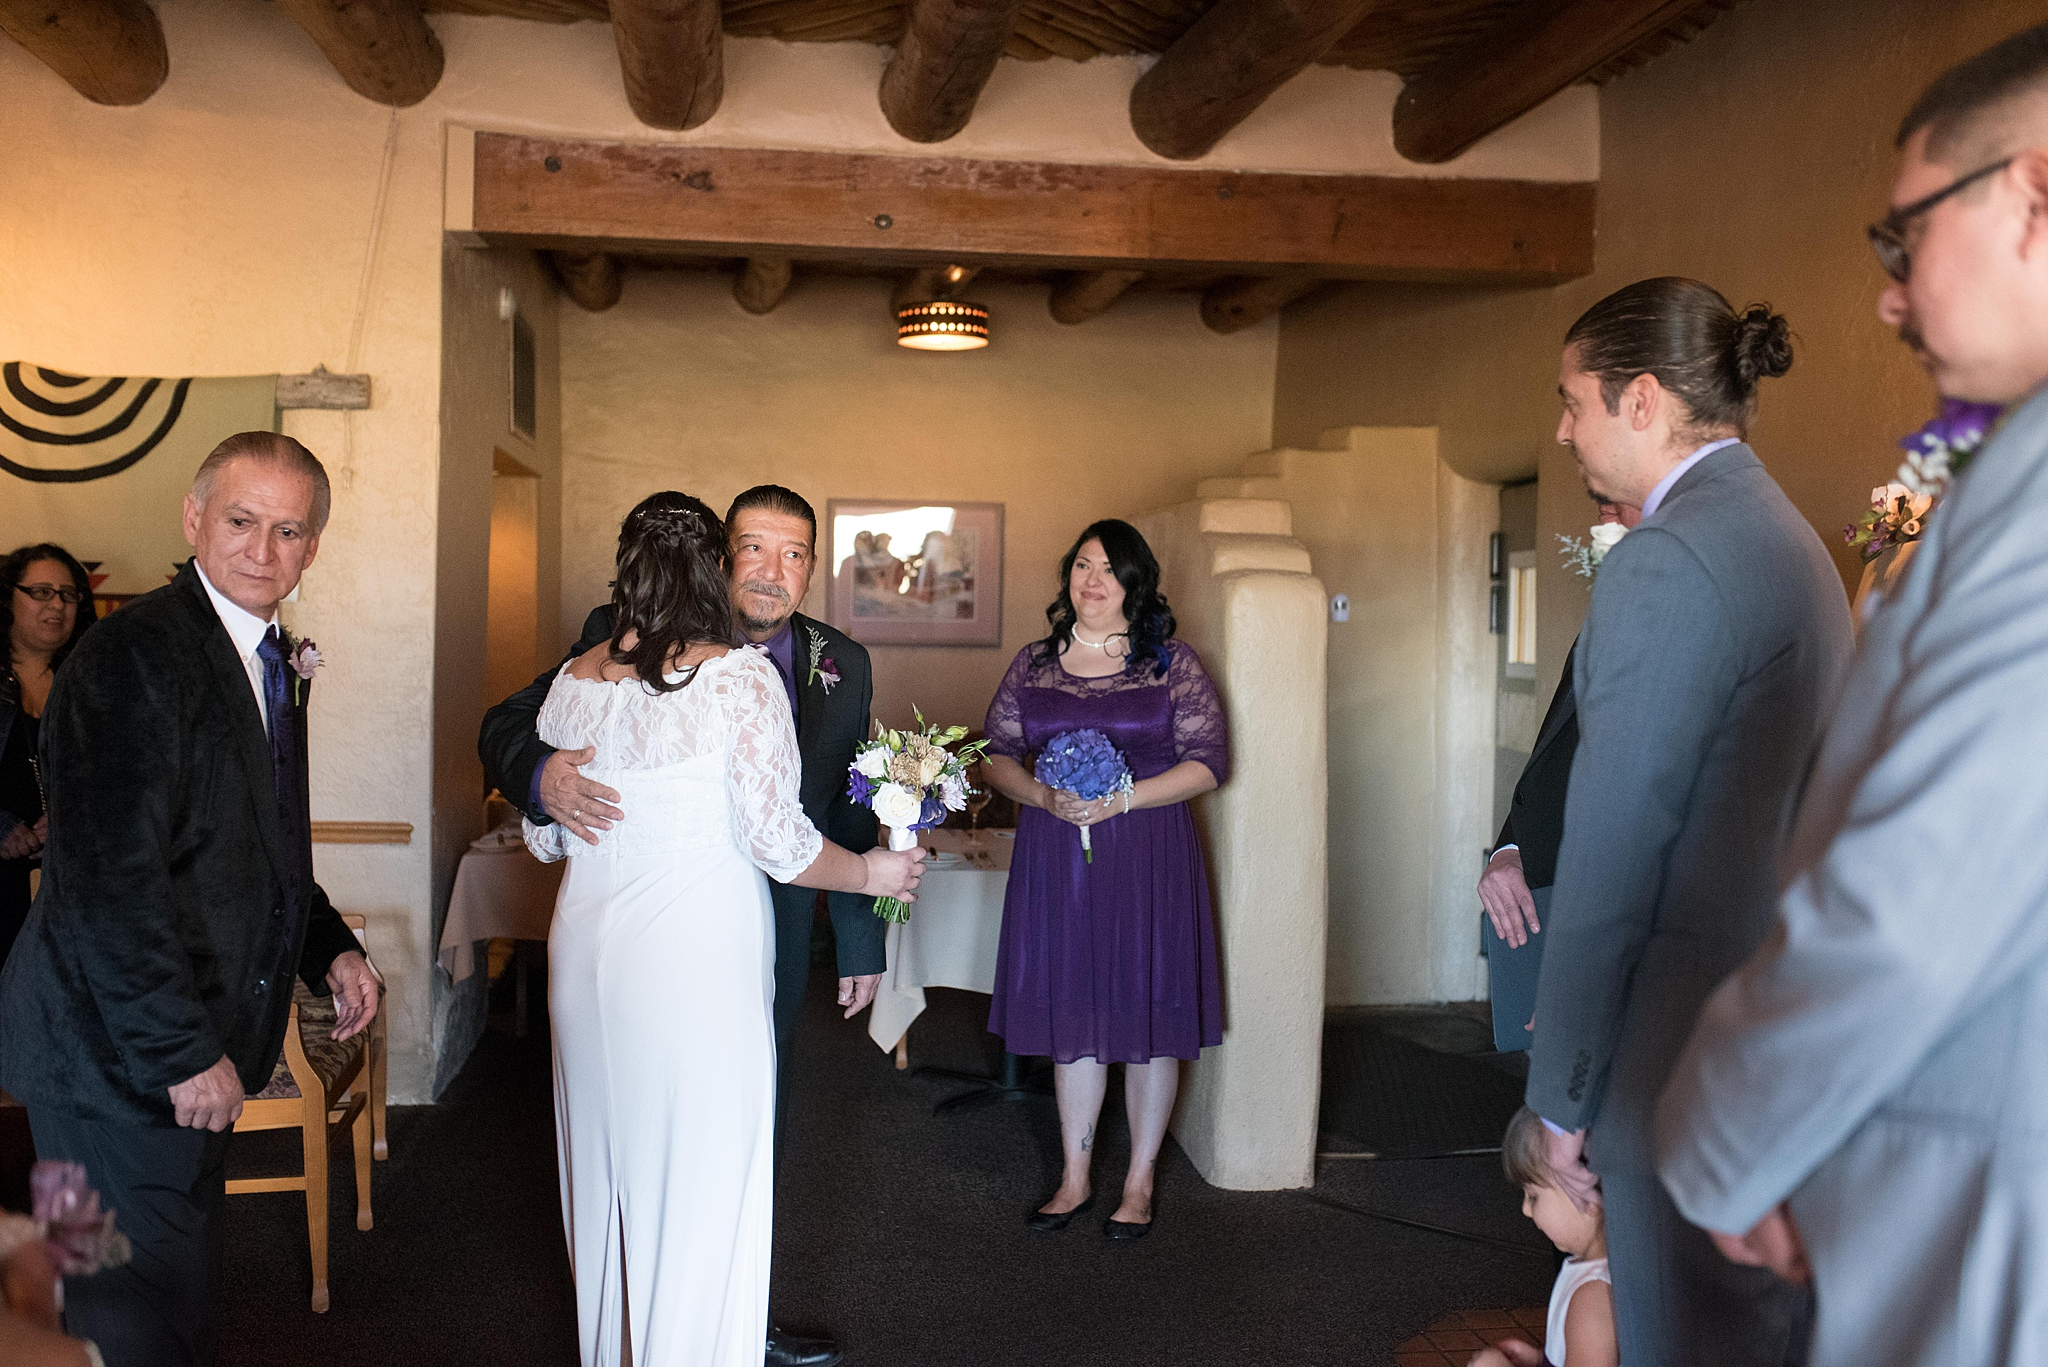 kaylakittsphotography-travis-michelle-prairie-star-albuquerque-wedding-photographer_0011.jpg